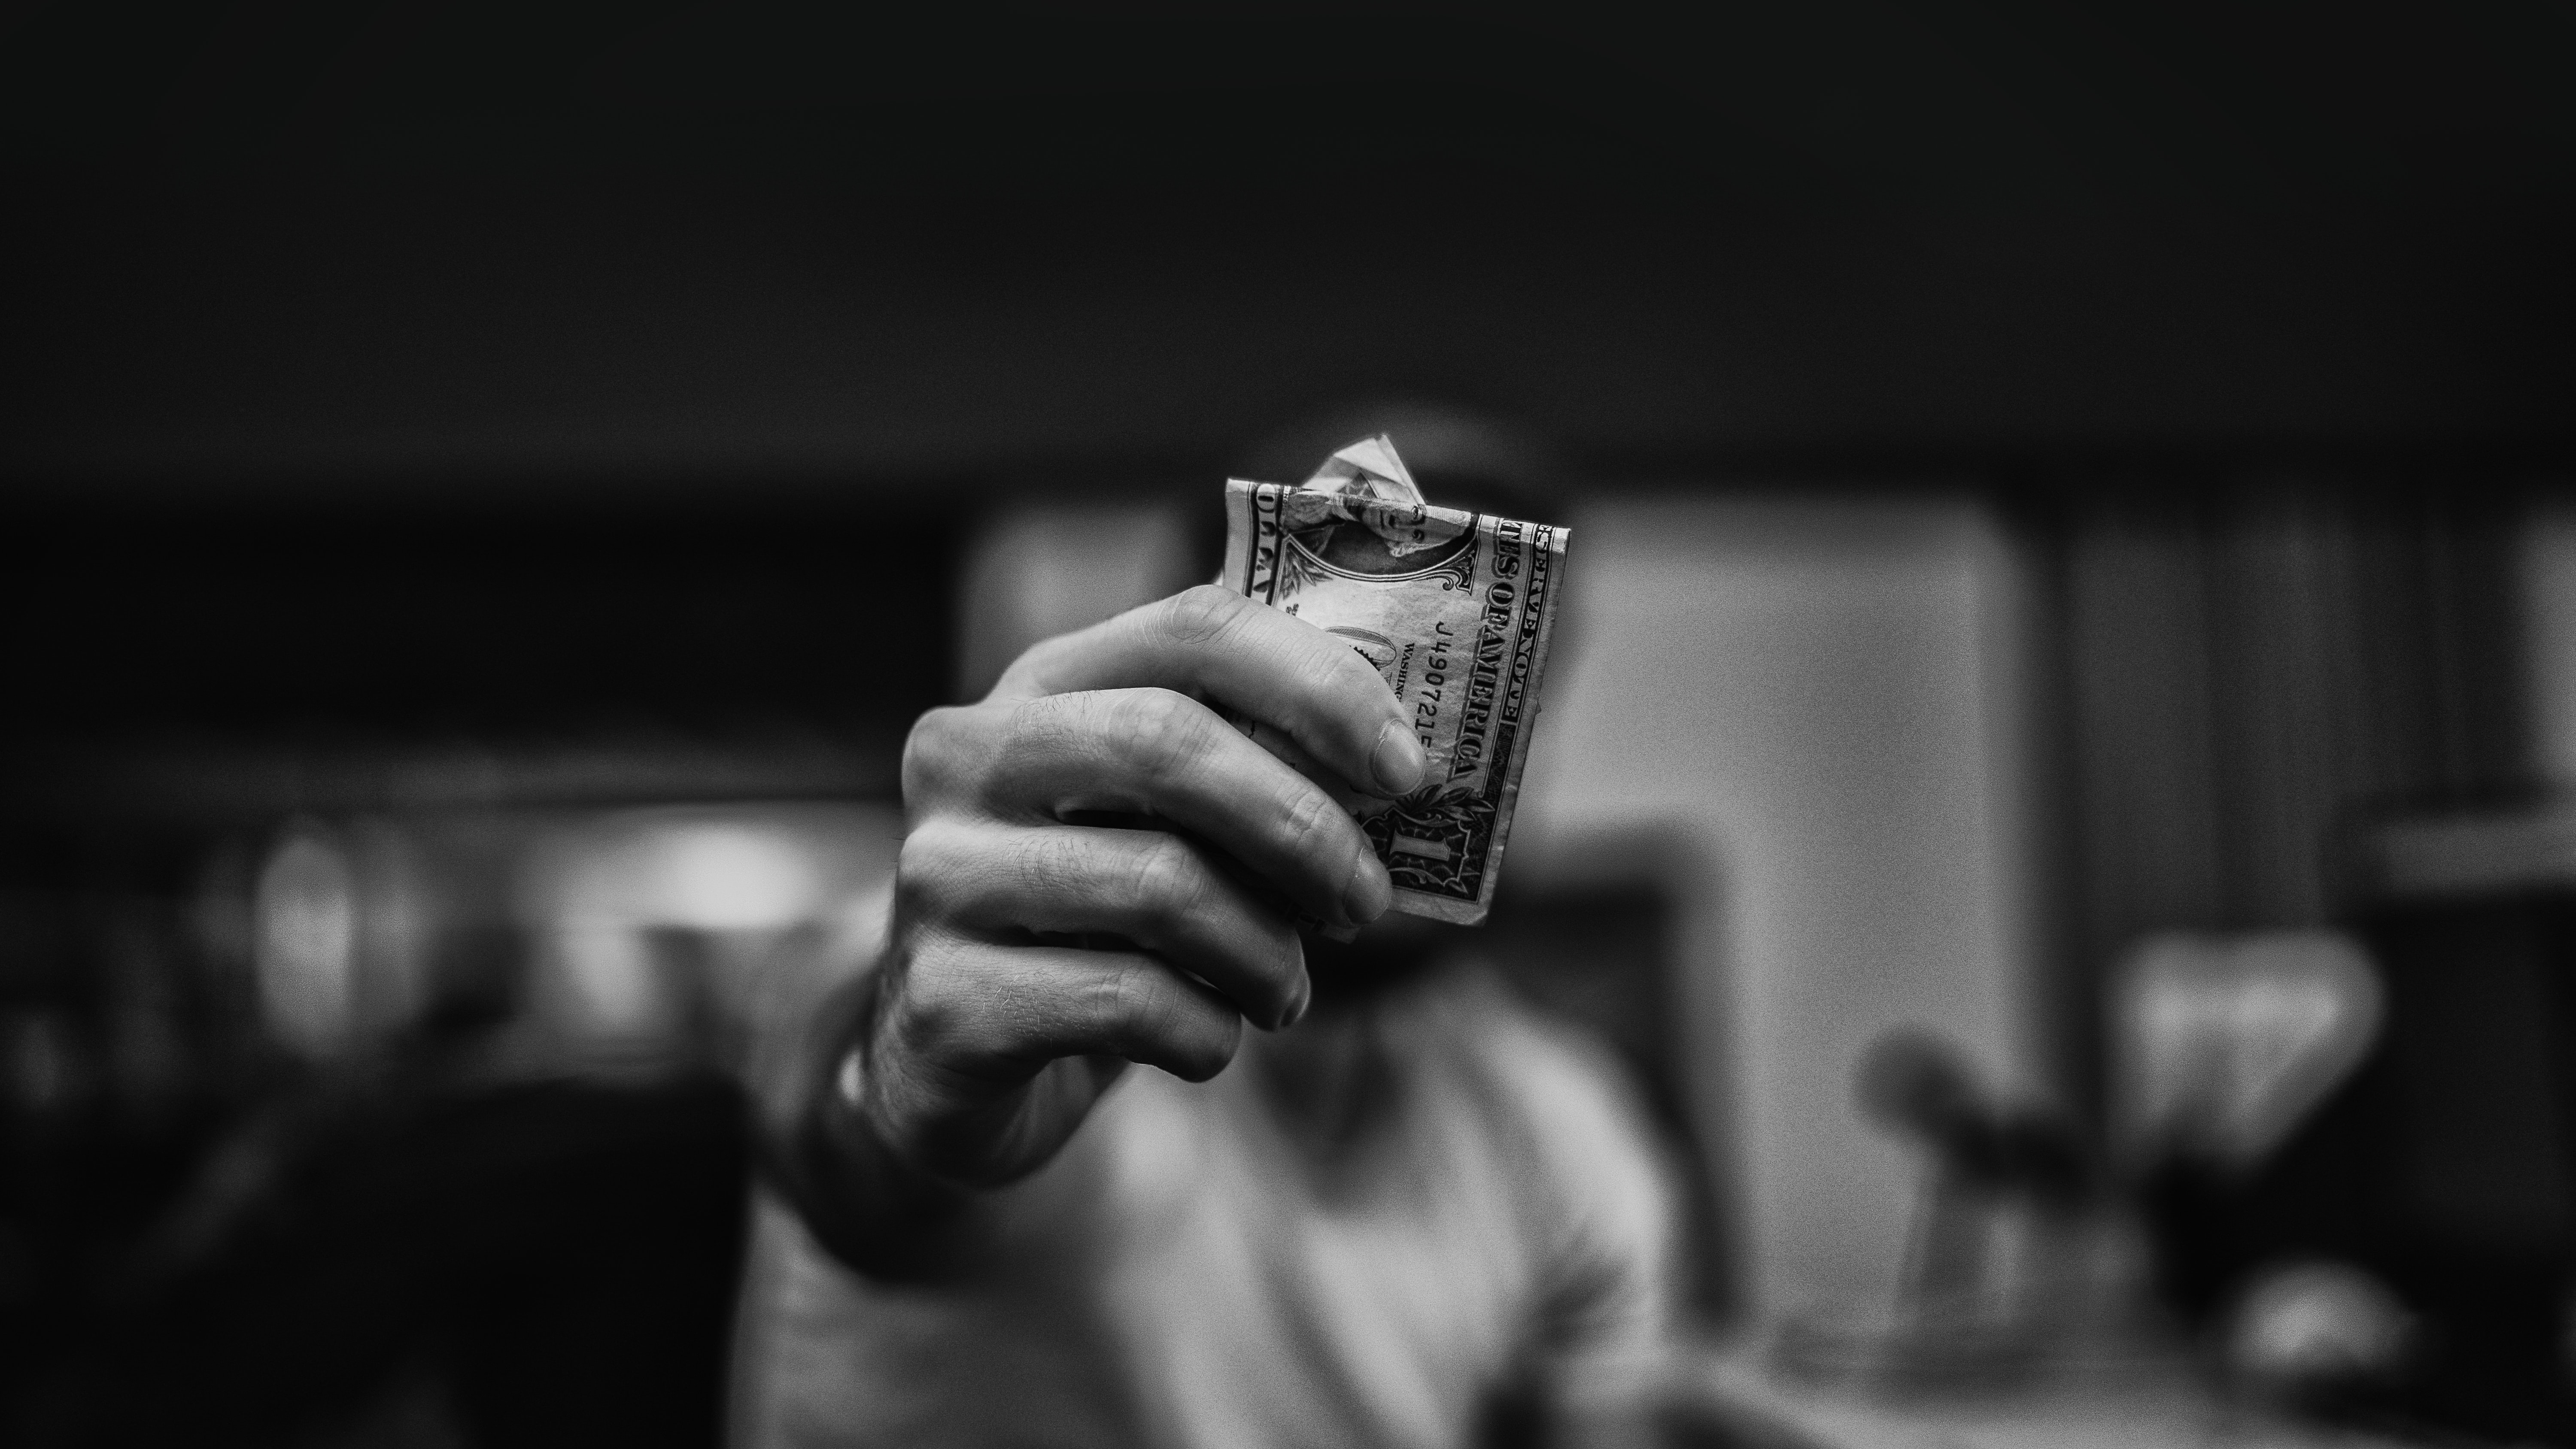 Black and white photograph of a man holding a dollar bill near the camera lens.